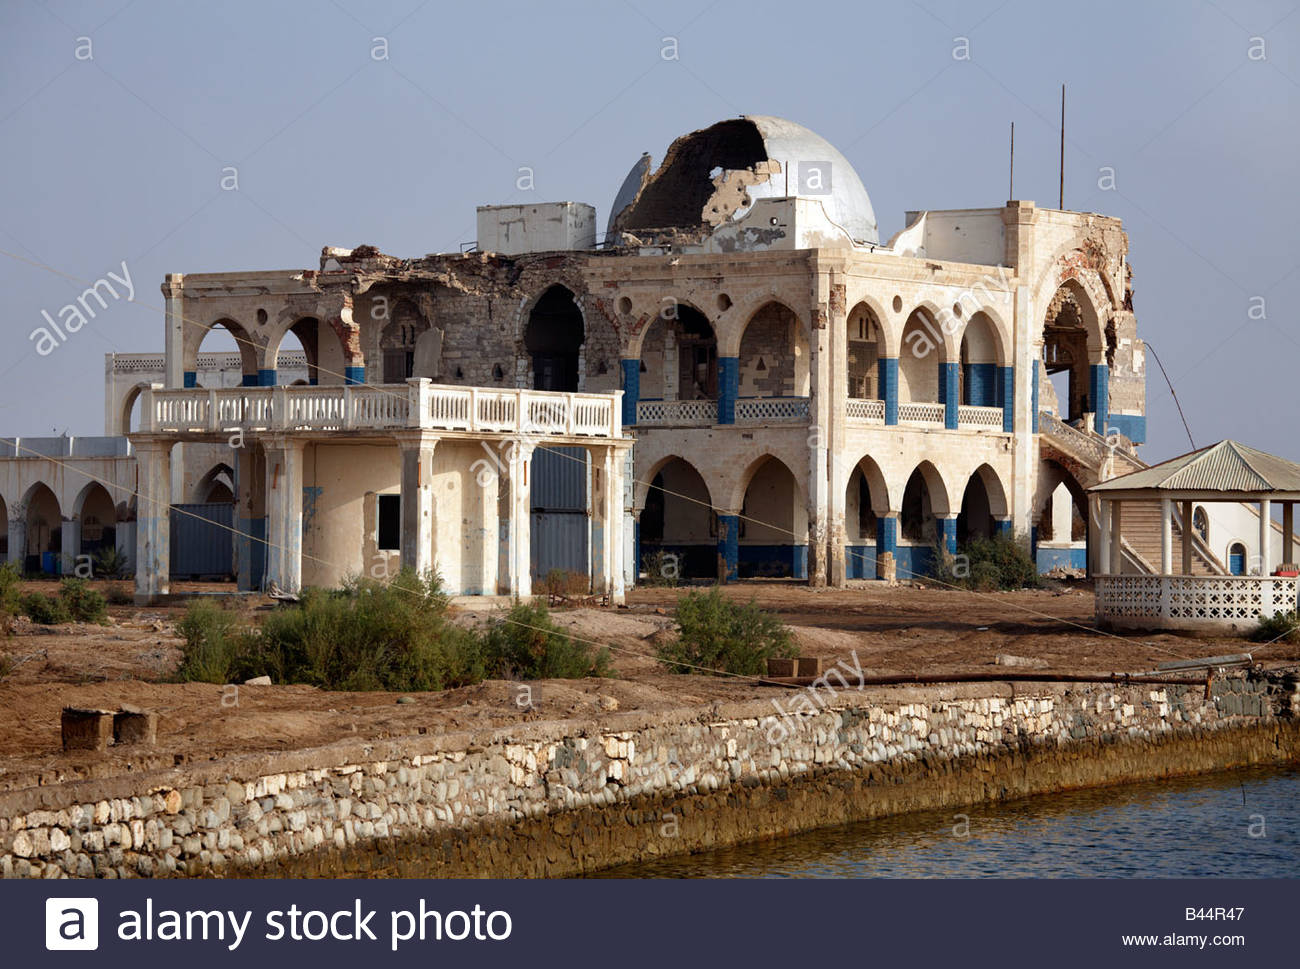 Imperial Palace Massawa, The destroyed Imperial Palace in the coastal town of Massawa ...